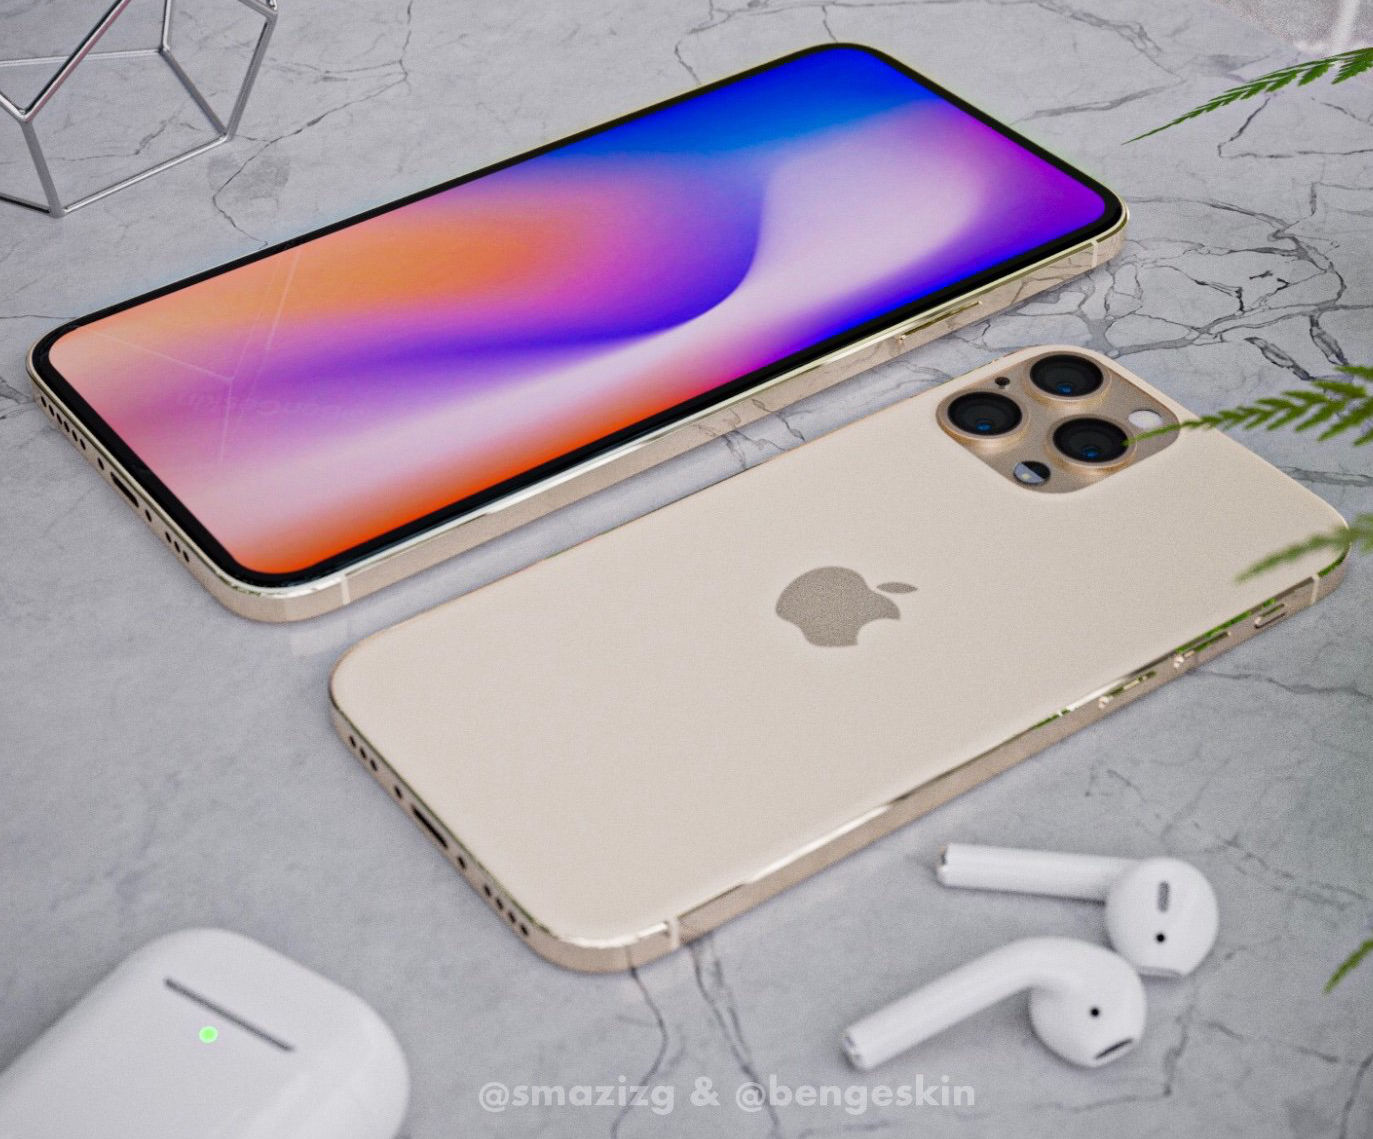 2020iPhone12 rendercg 03